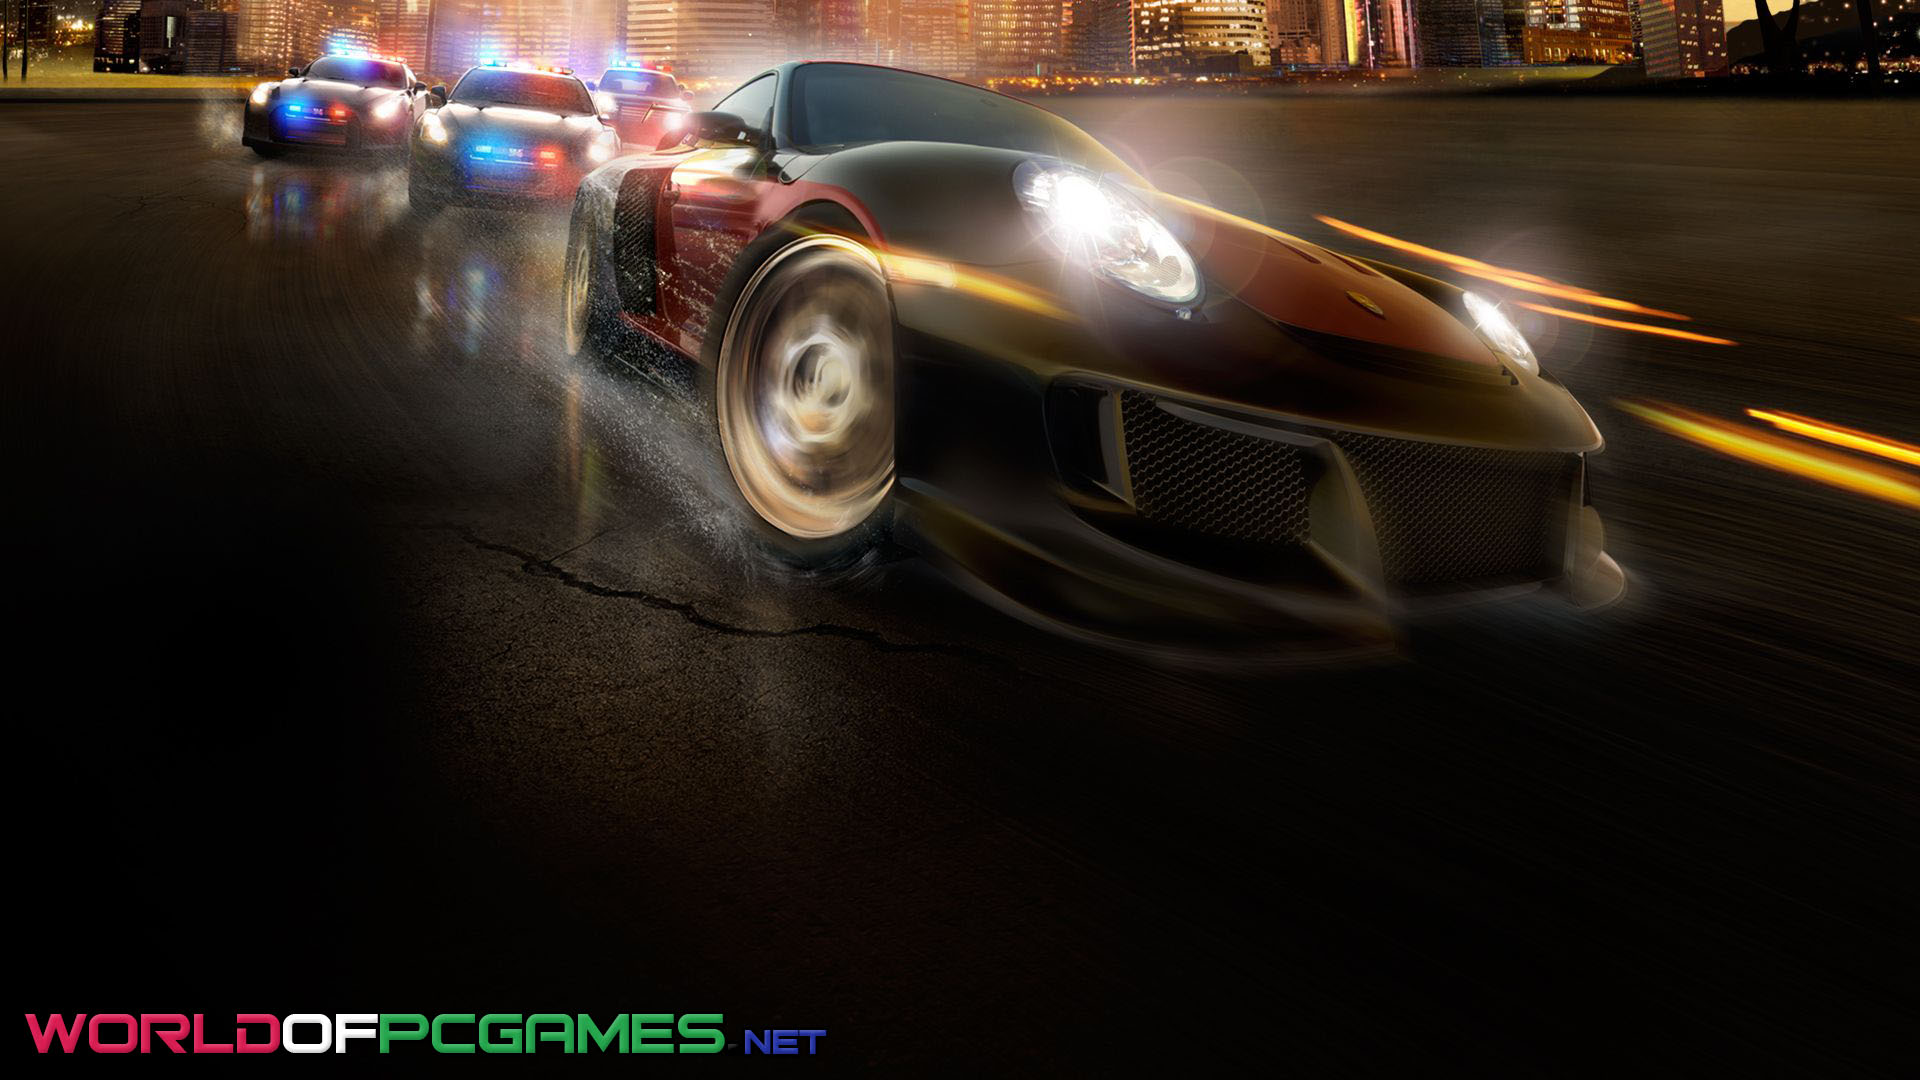 Need For Speed Undercover Free Download By Worldofpcgames.net 1 - Need For Speed Undercover Download Free